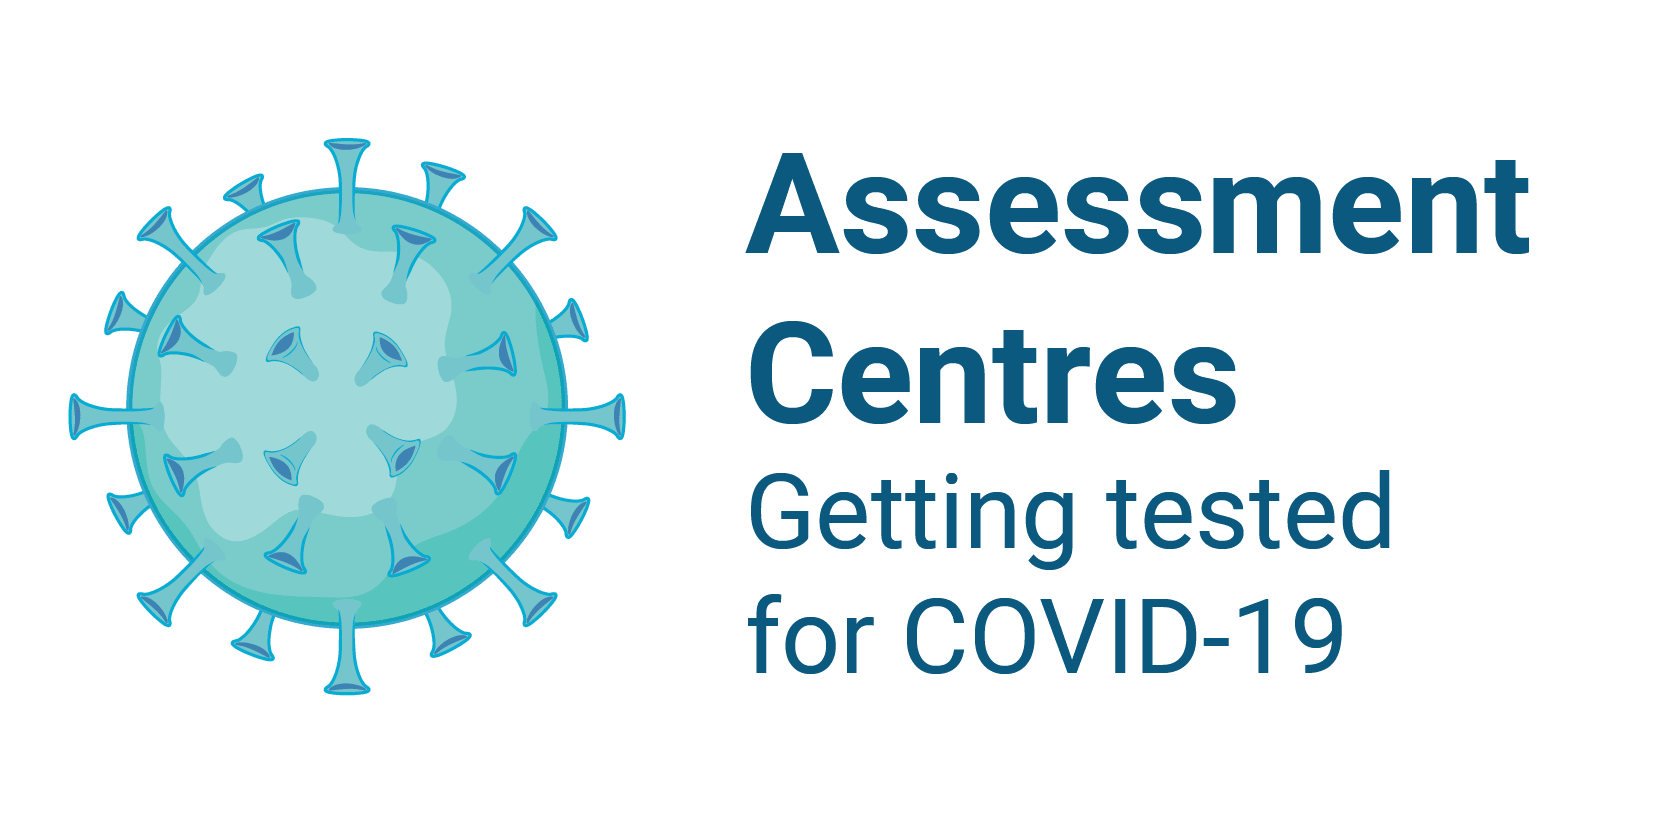 Assessment Centres - Getting tested for COVID-19